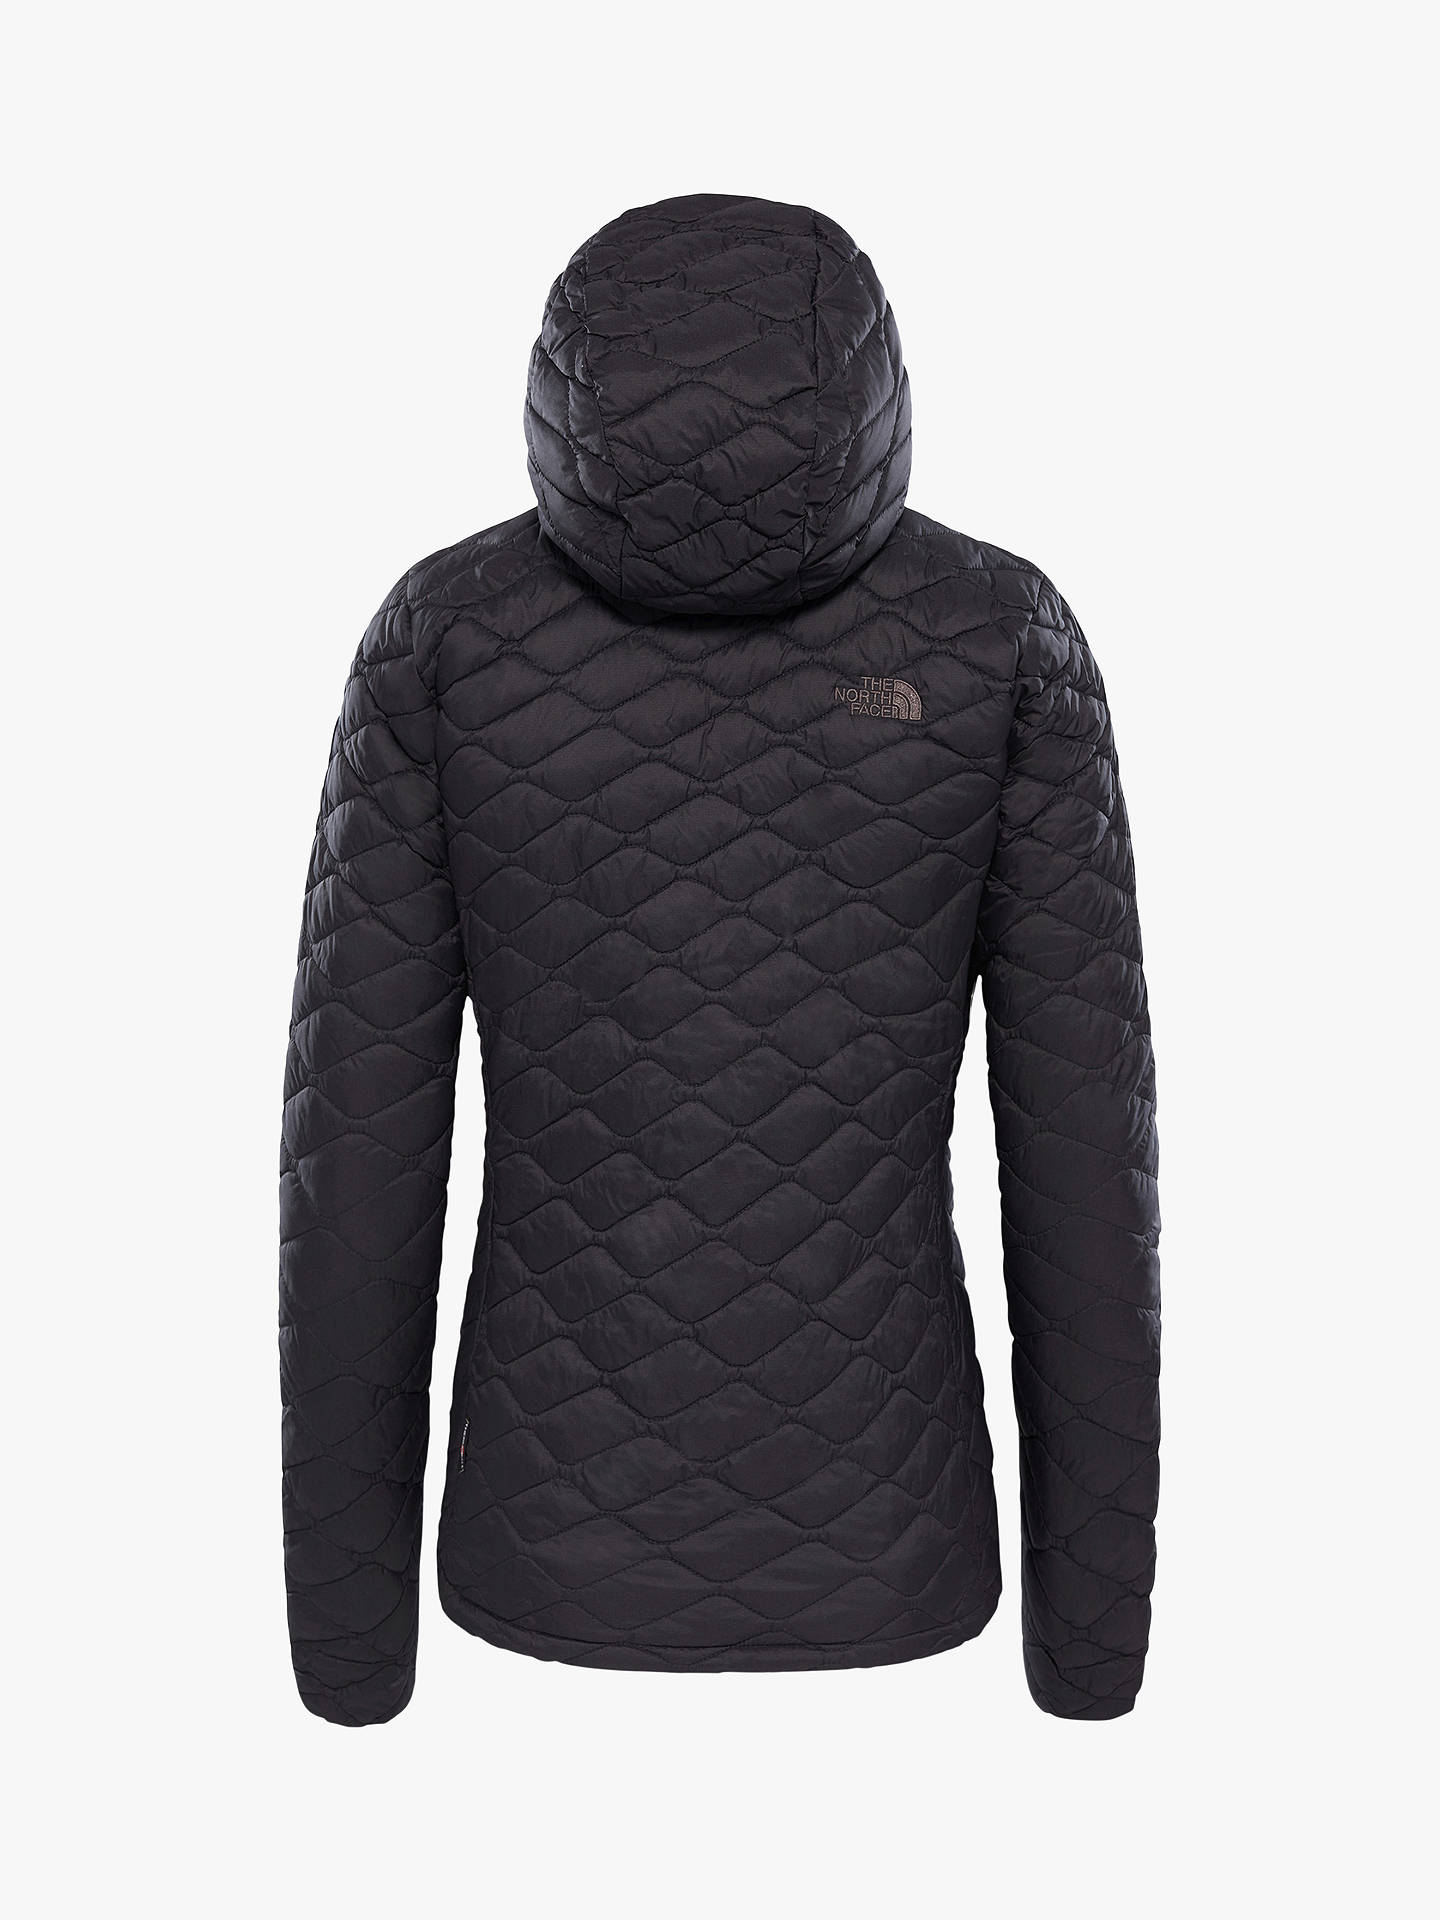 BuyThe North Face Thermoball Women's Hooded Jacket, Black, S Online at johnlewis.com